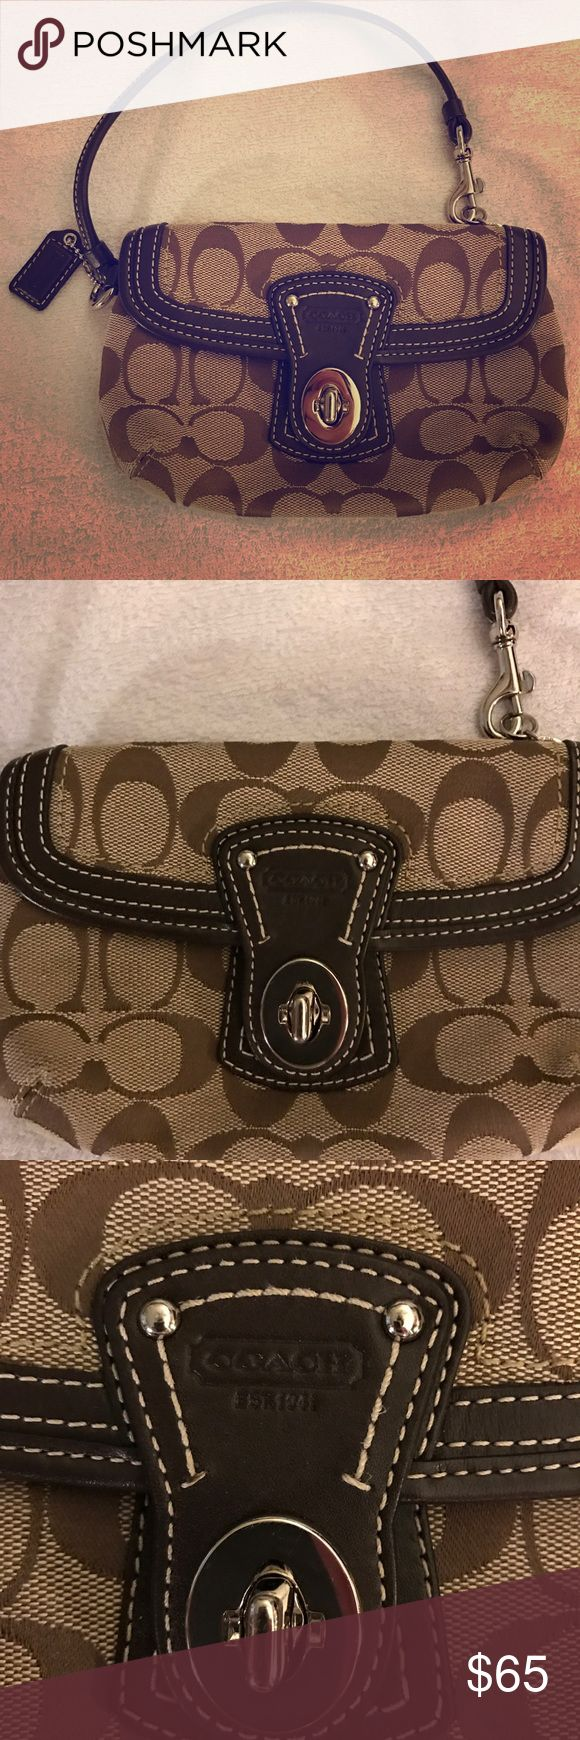 Authentic COACH Clutch Brown Canvas Brown coach clutch perfect for a night out!! Brown with canvas material. I only used it once so it's in great condition Coach Bags Clutches & Wristlets